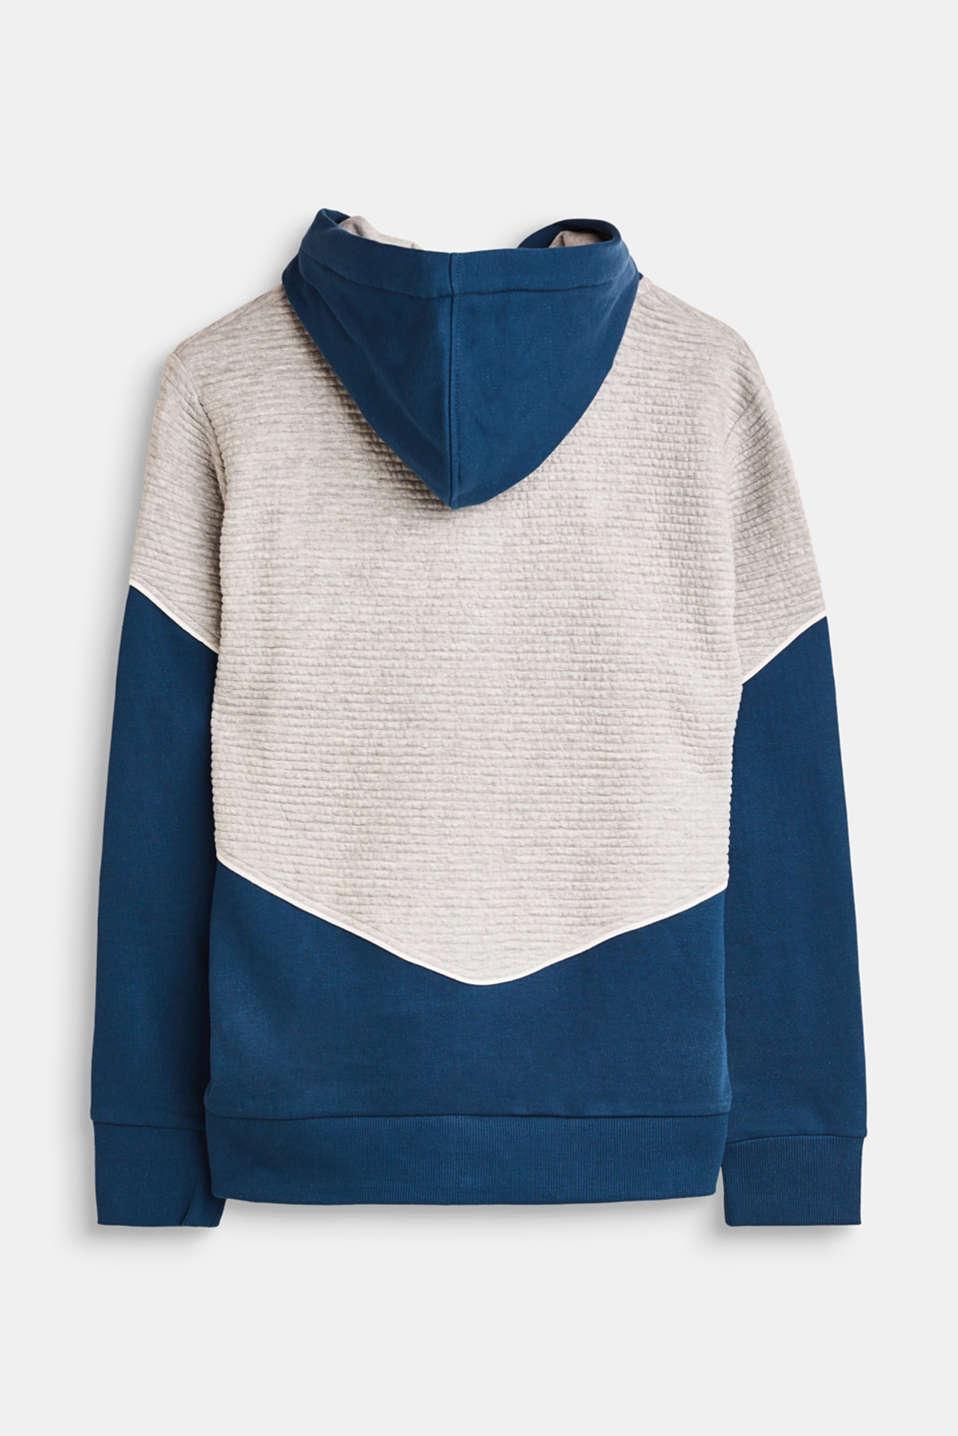 Sweatshirt cardigan with a colour block effect